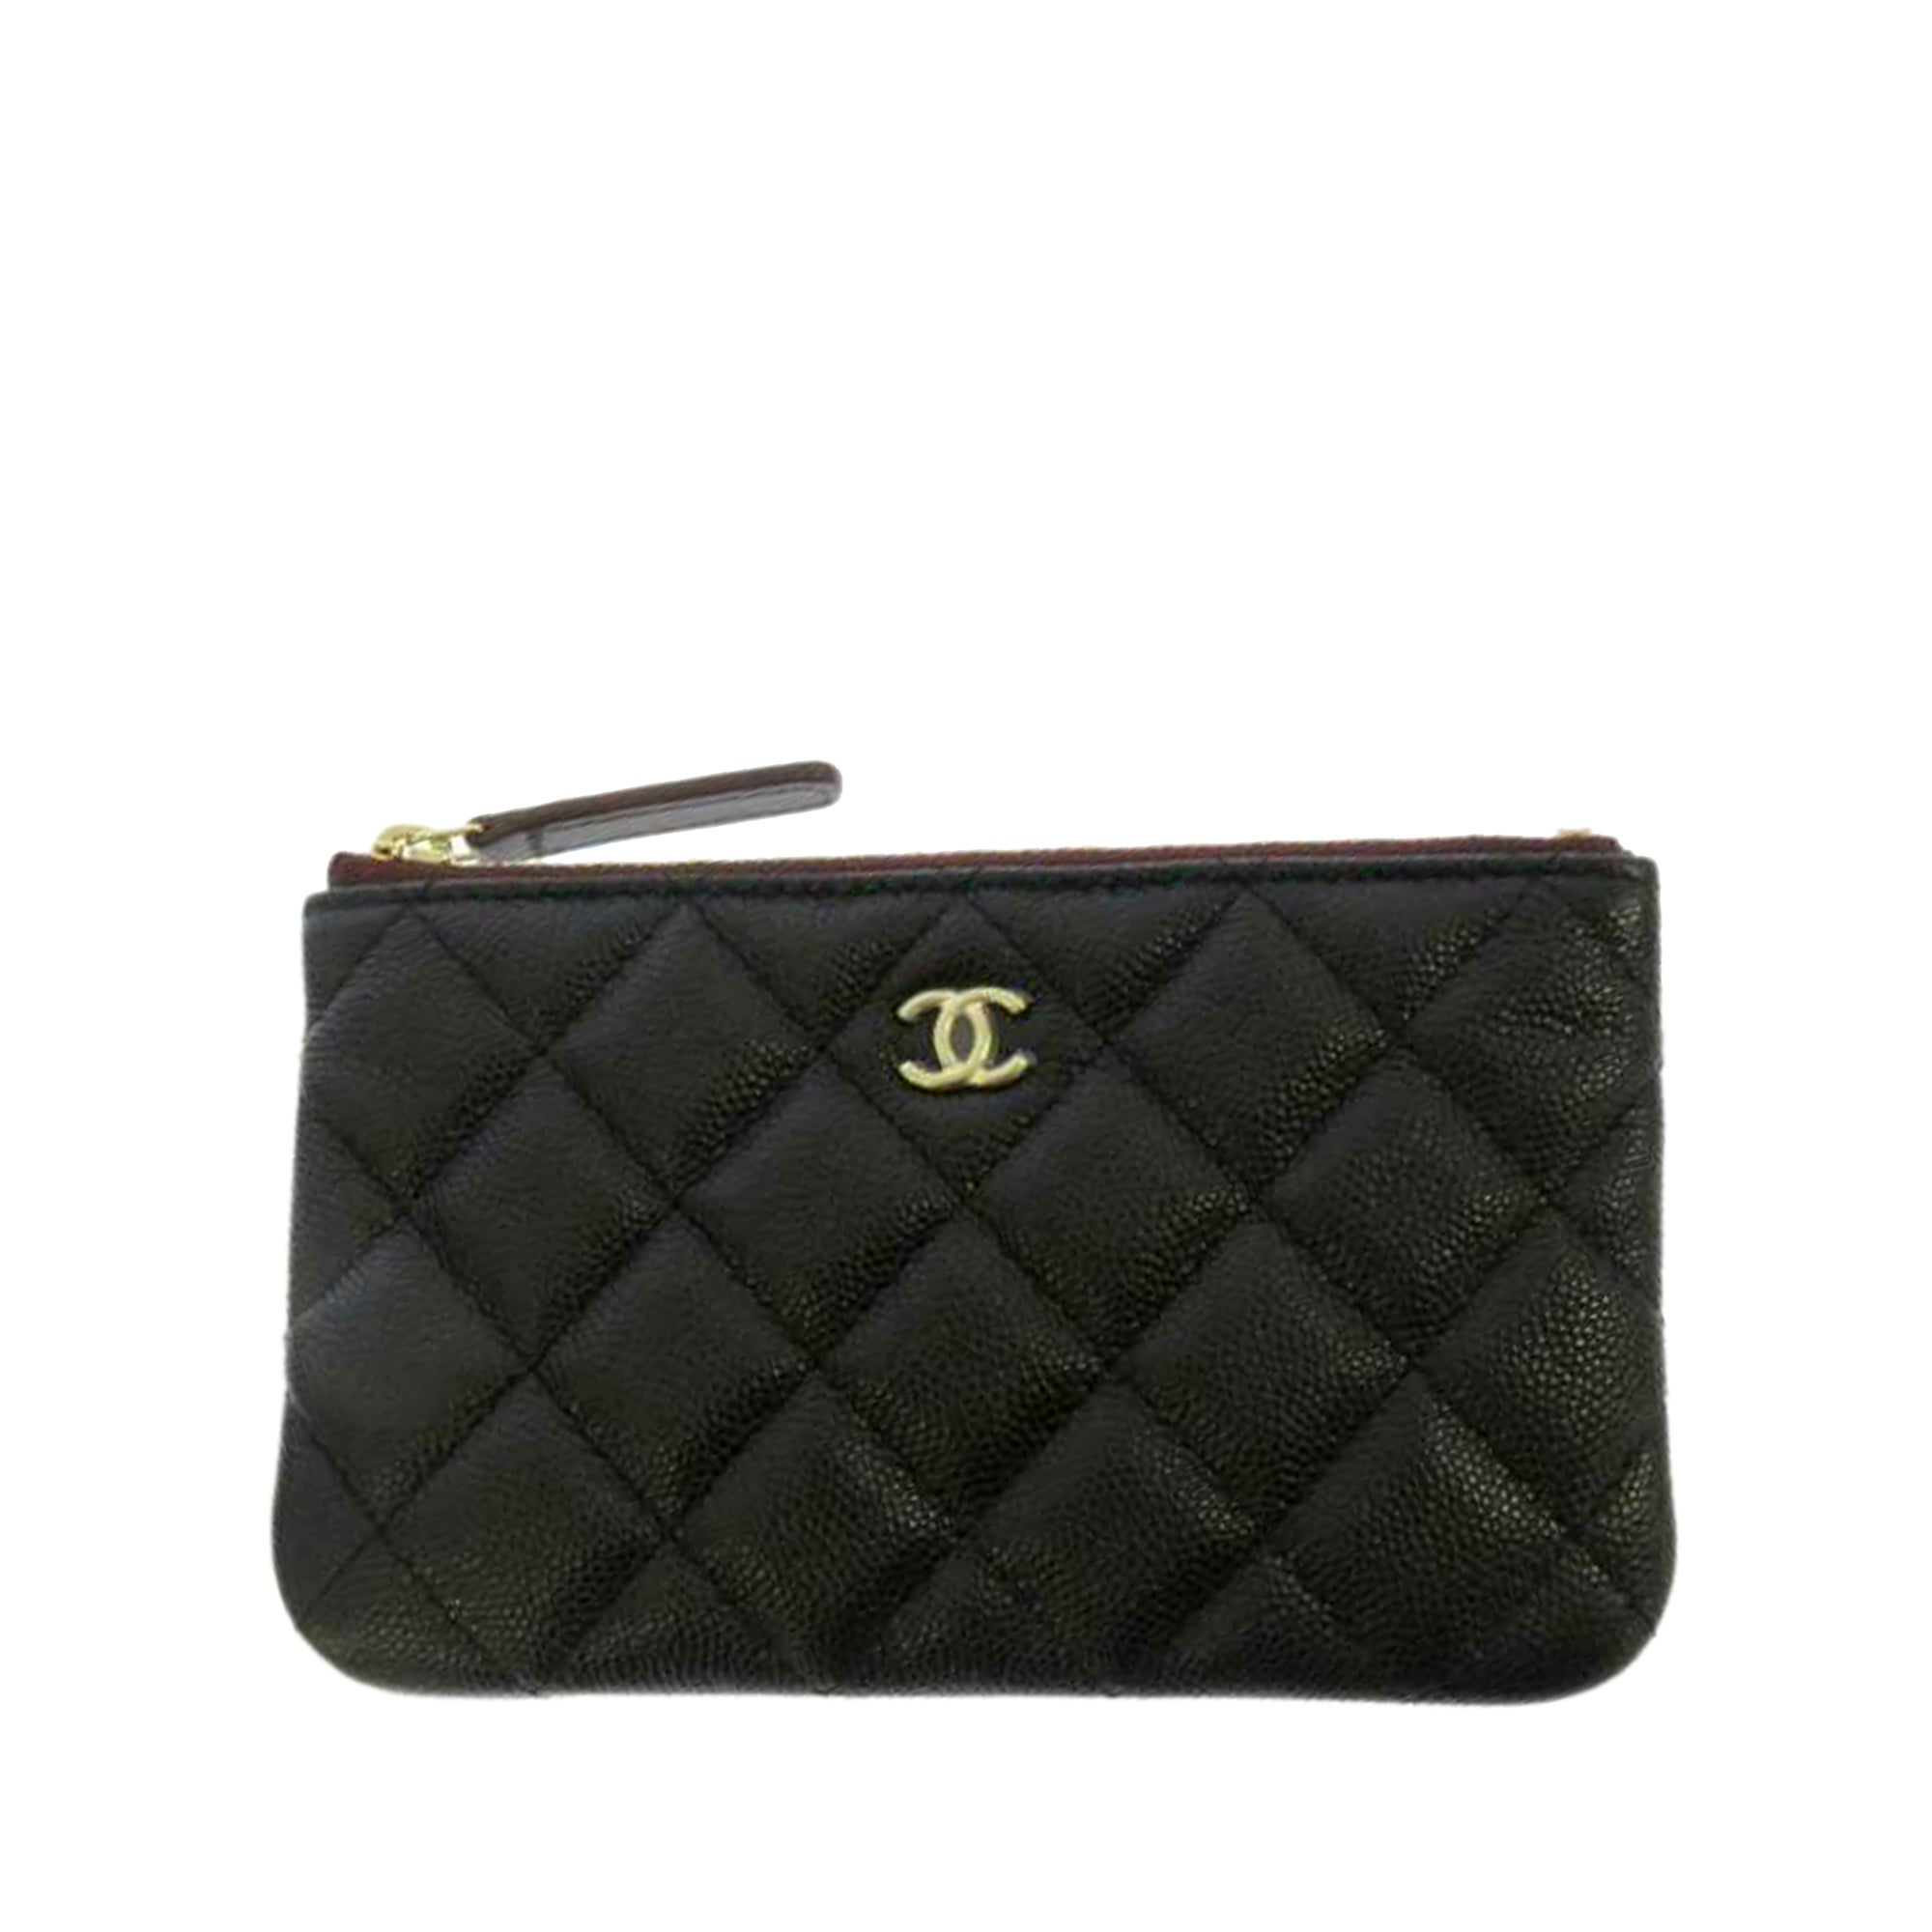 Chanel Matelasse Caviar Leather Coin Pouch